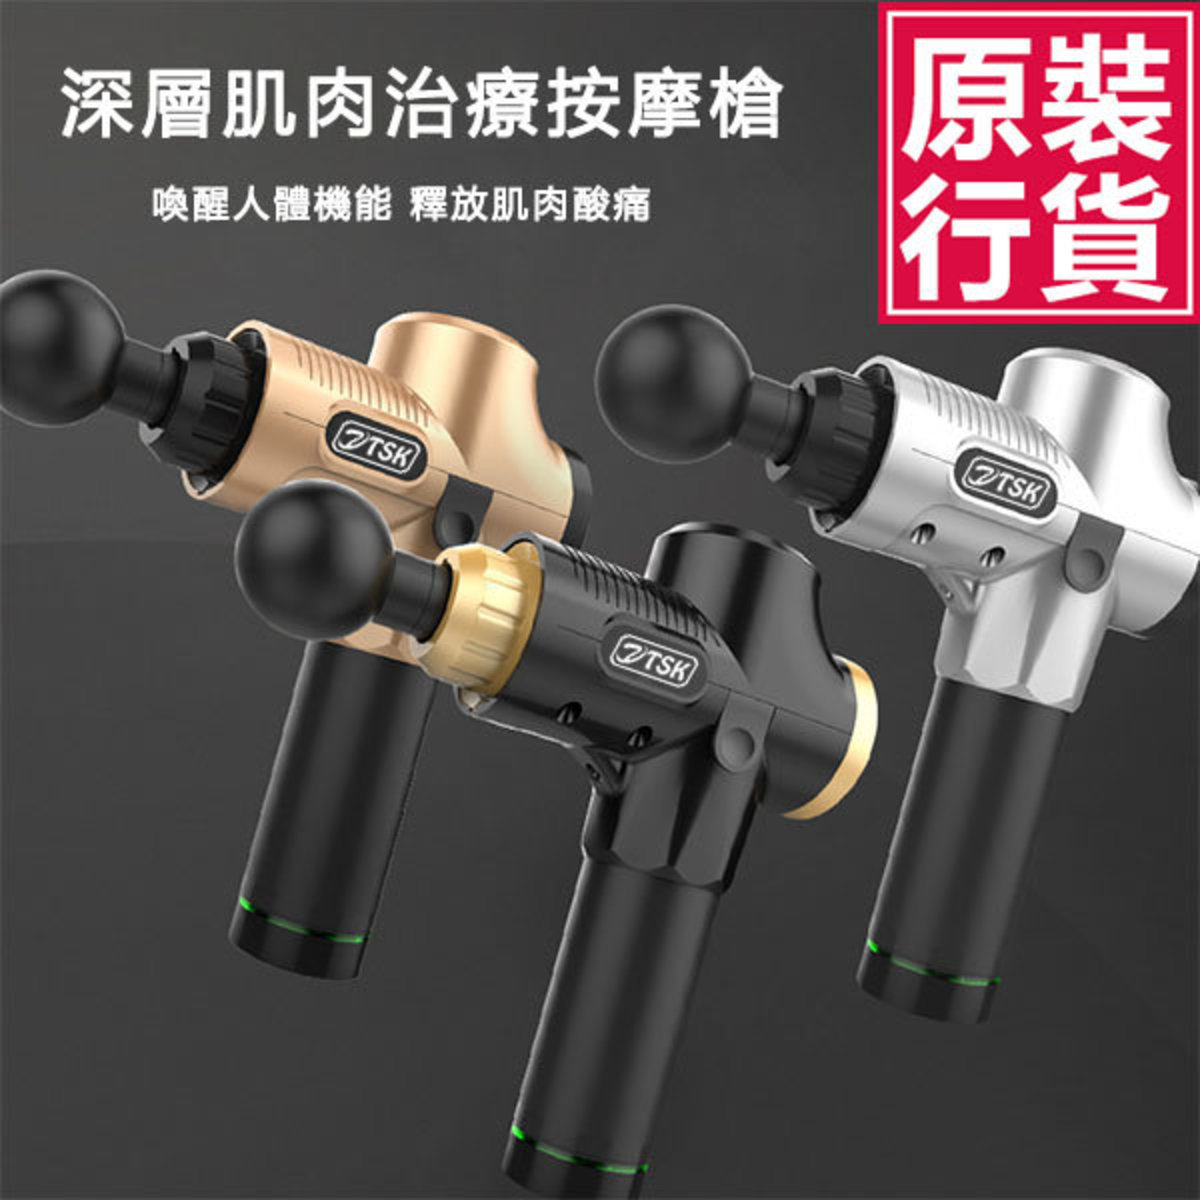 New 20-speed adjustable touch-screen deep muscle therapy massage gun + send (4 adapters)